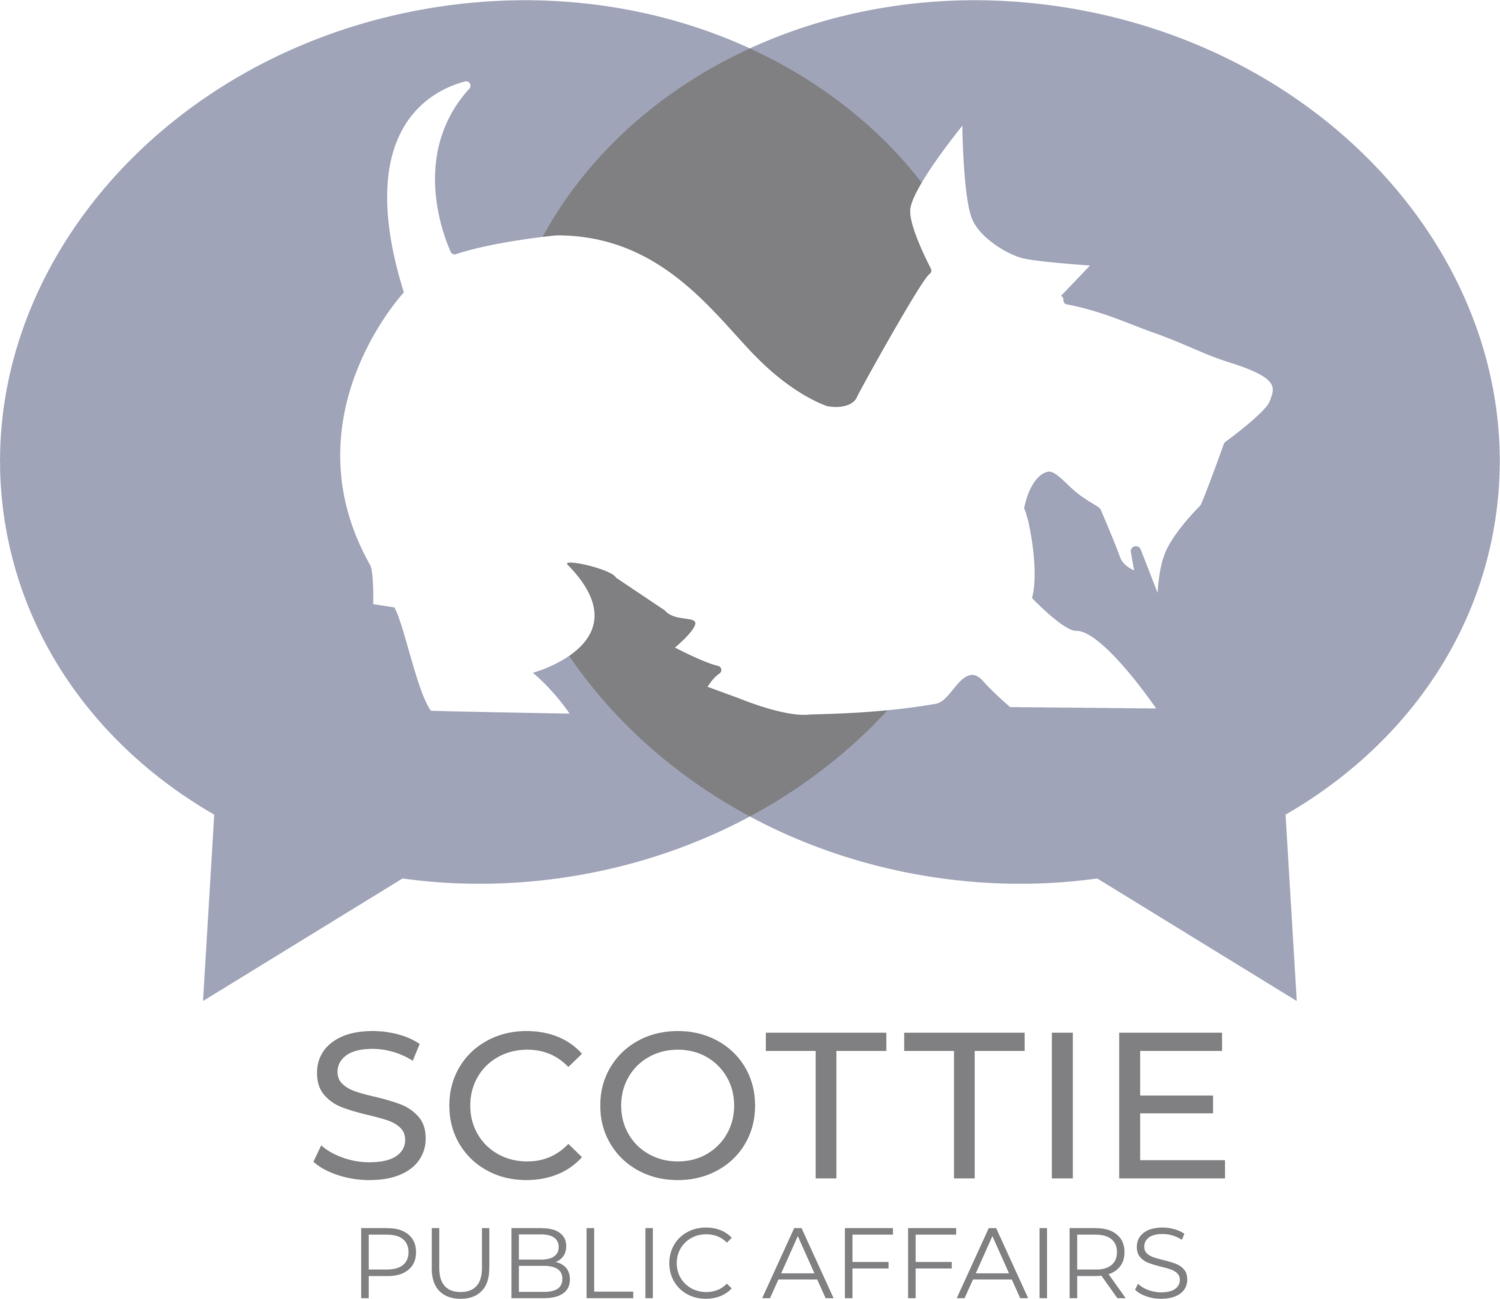 Scottie Public Affairs